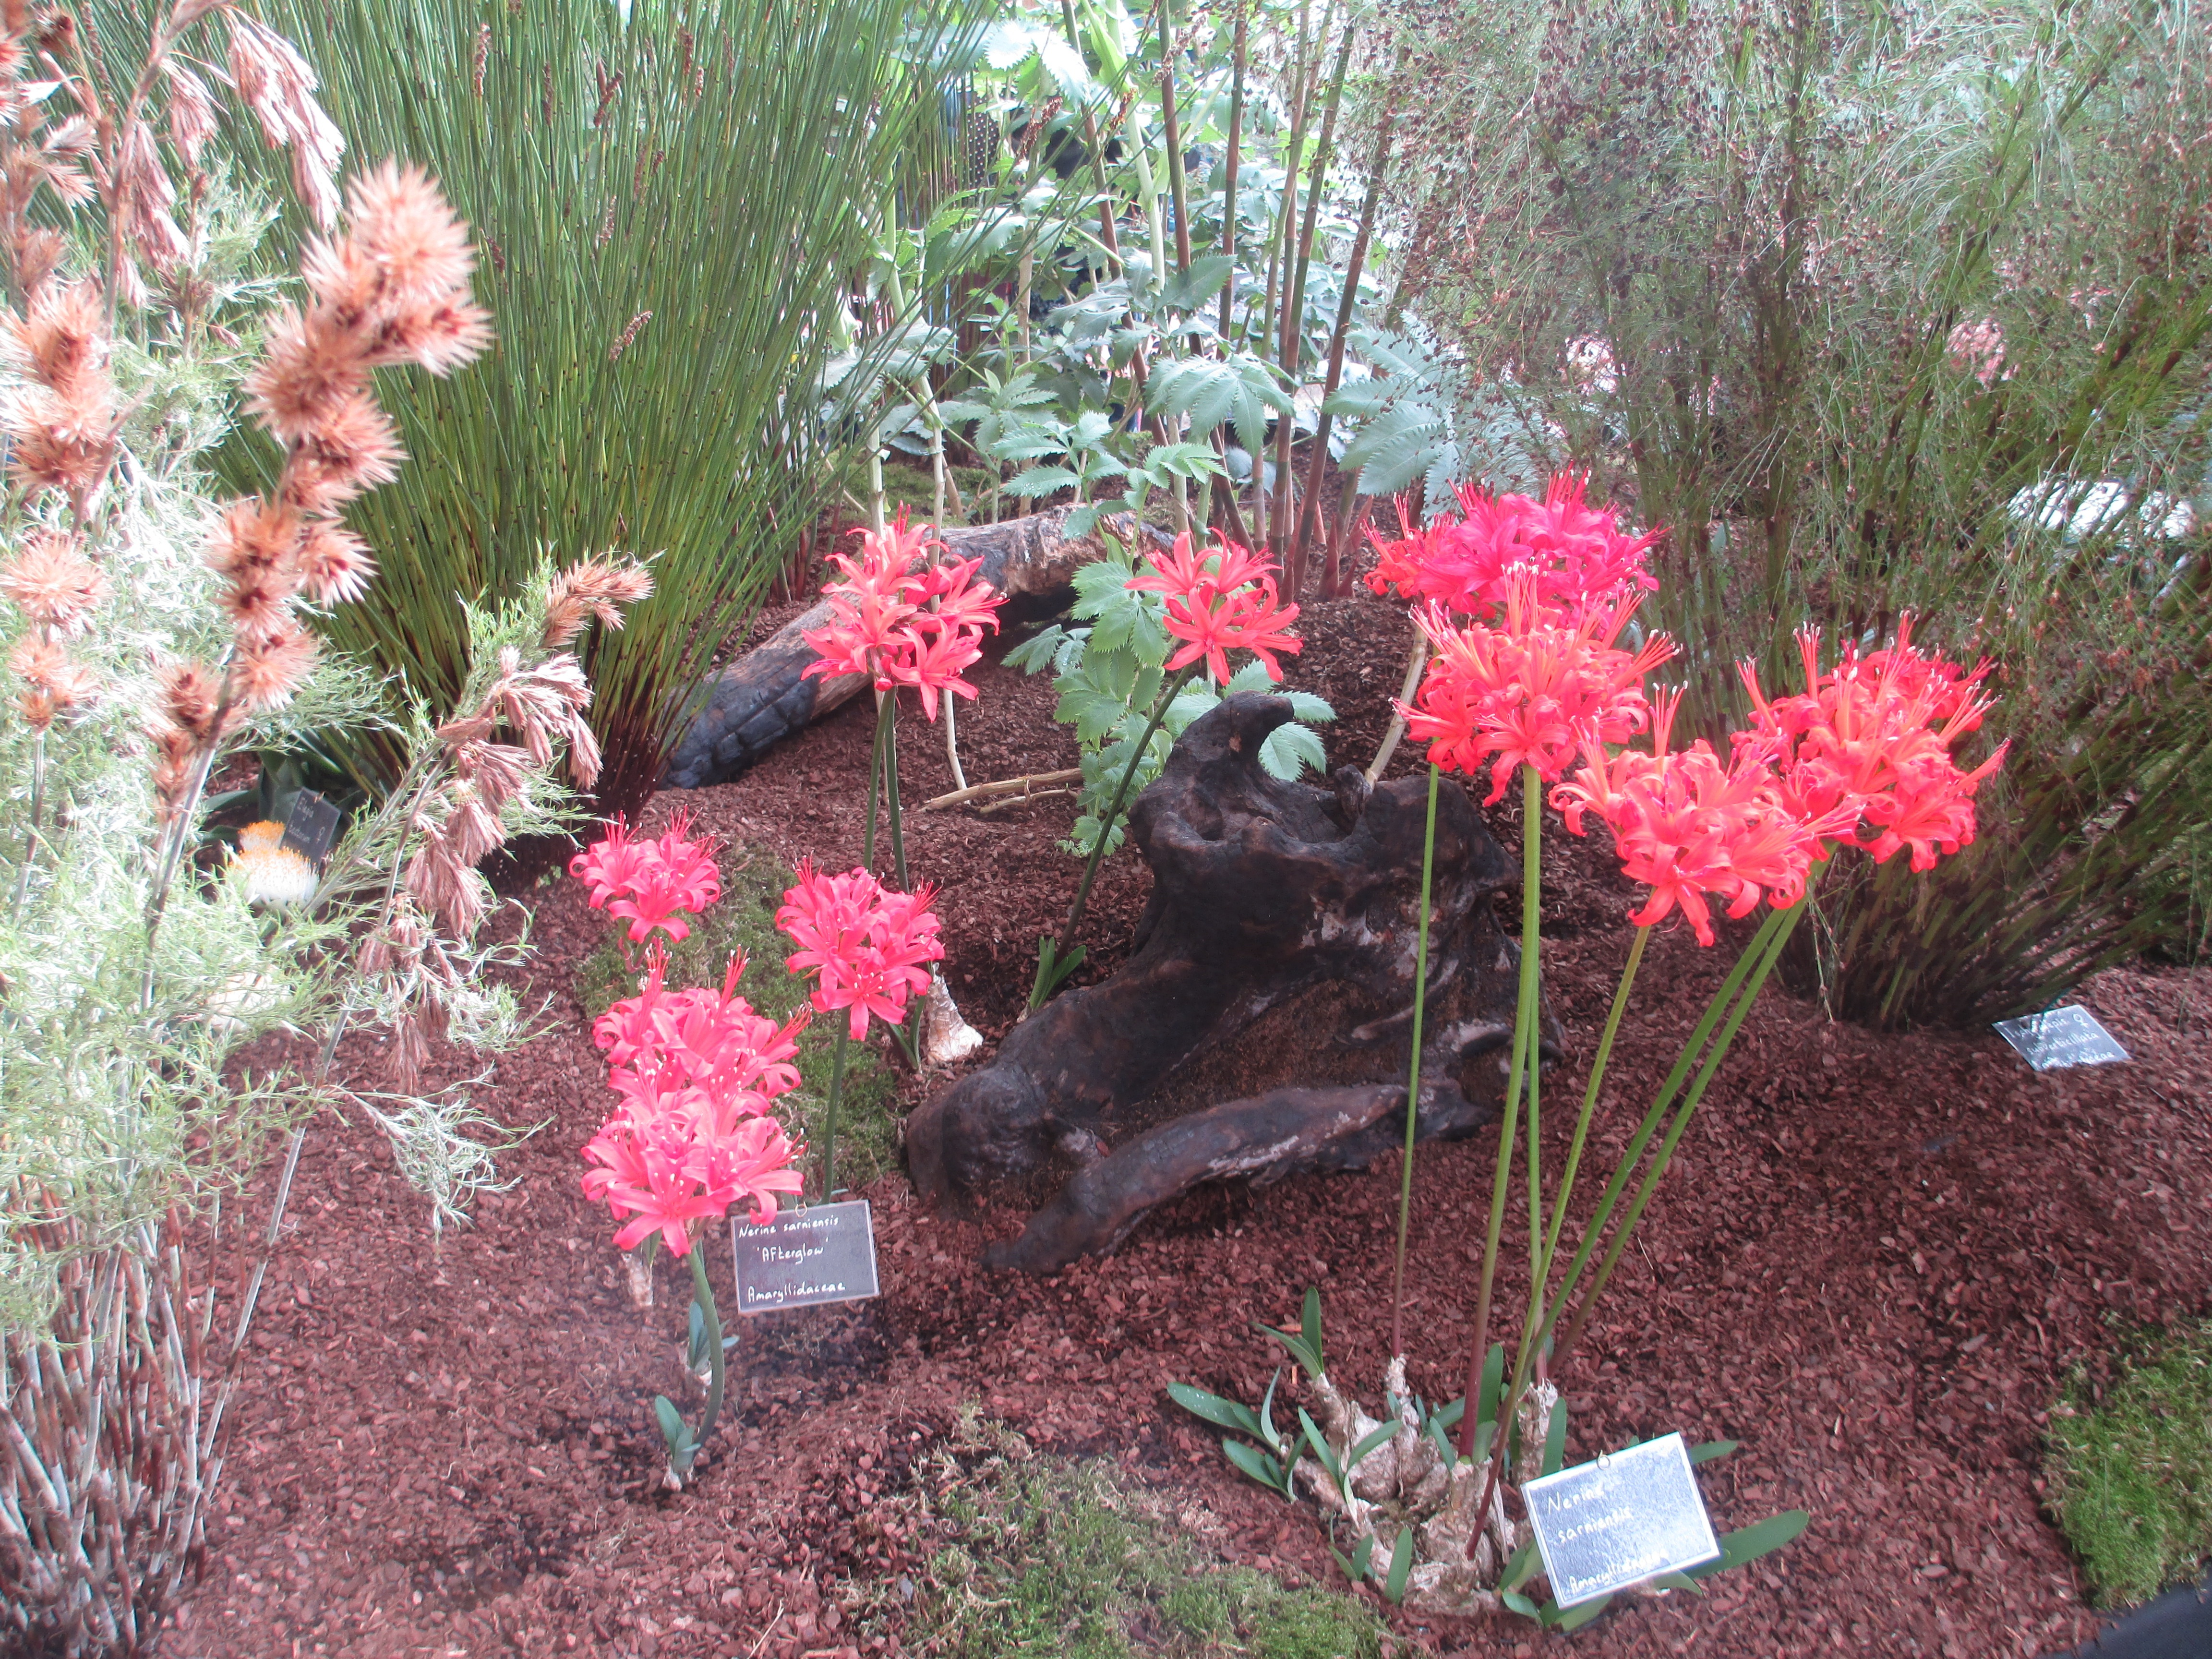 Nerines in Kelnan Plants' display.